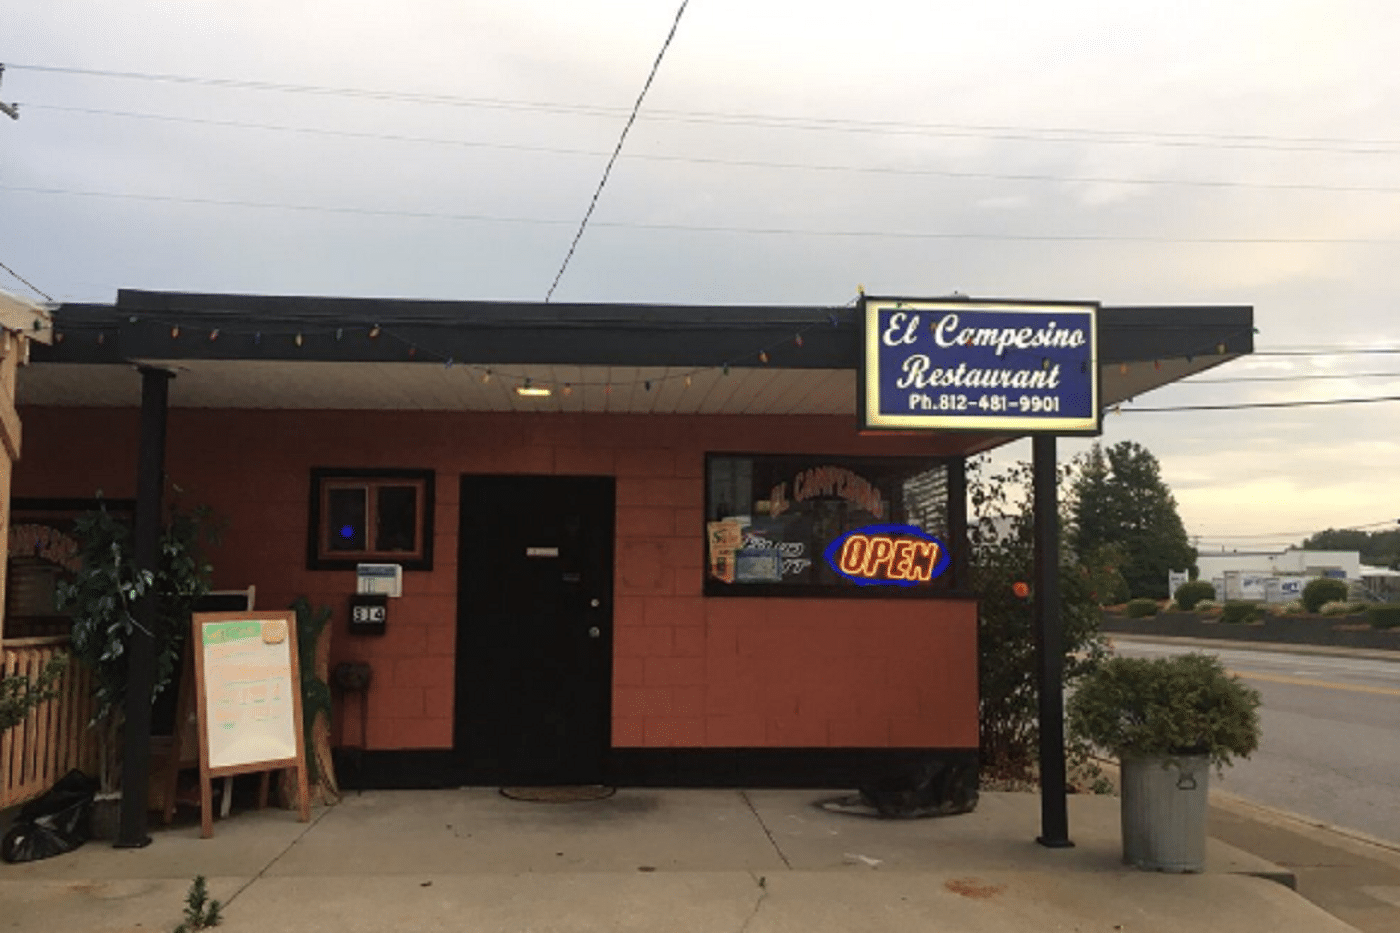 El Campesino Resturant Cited by Liquor Control